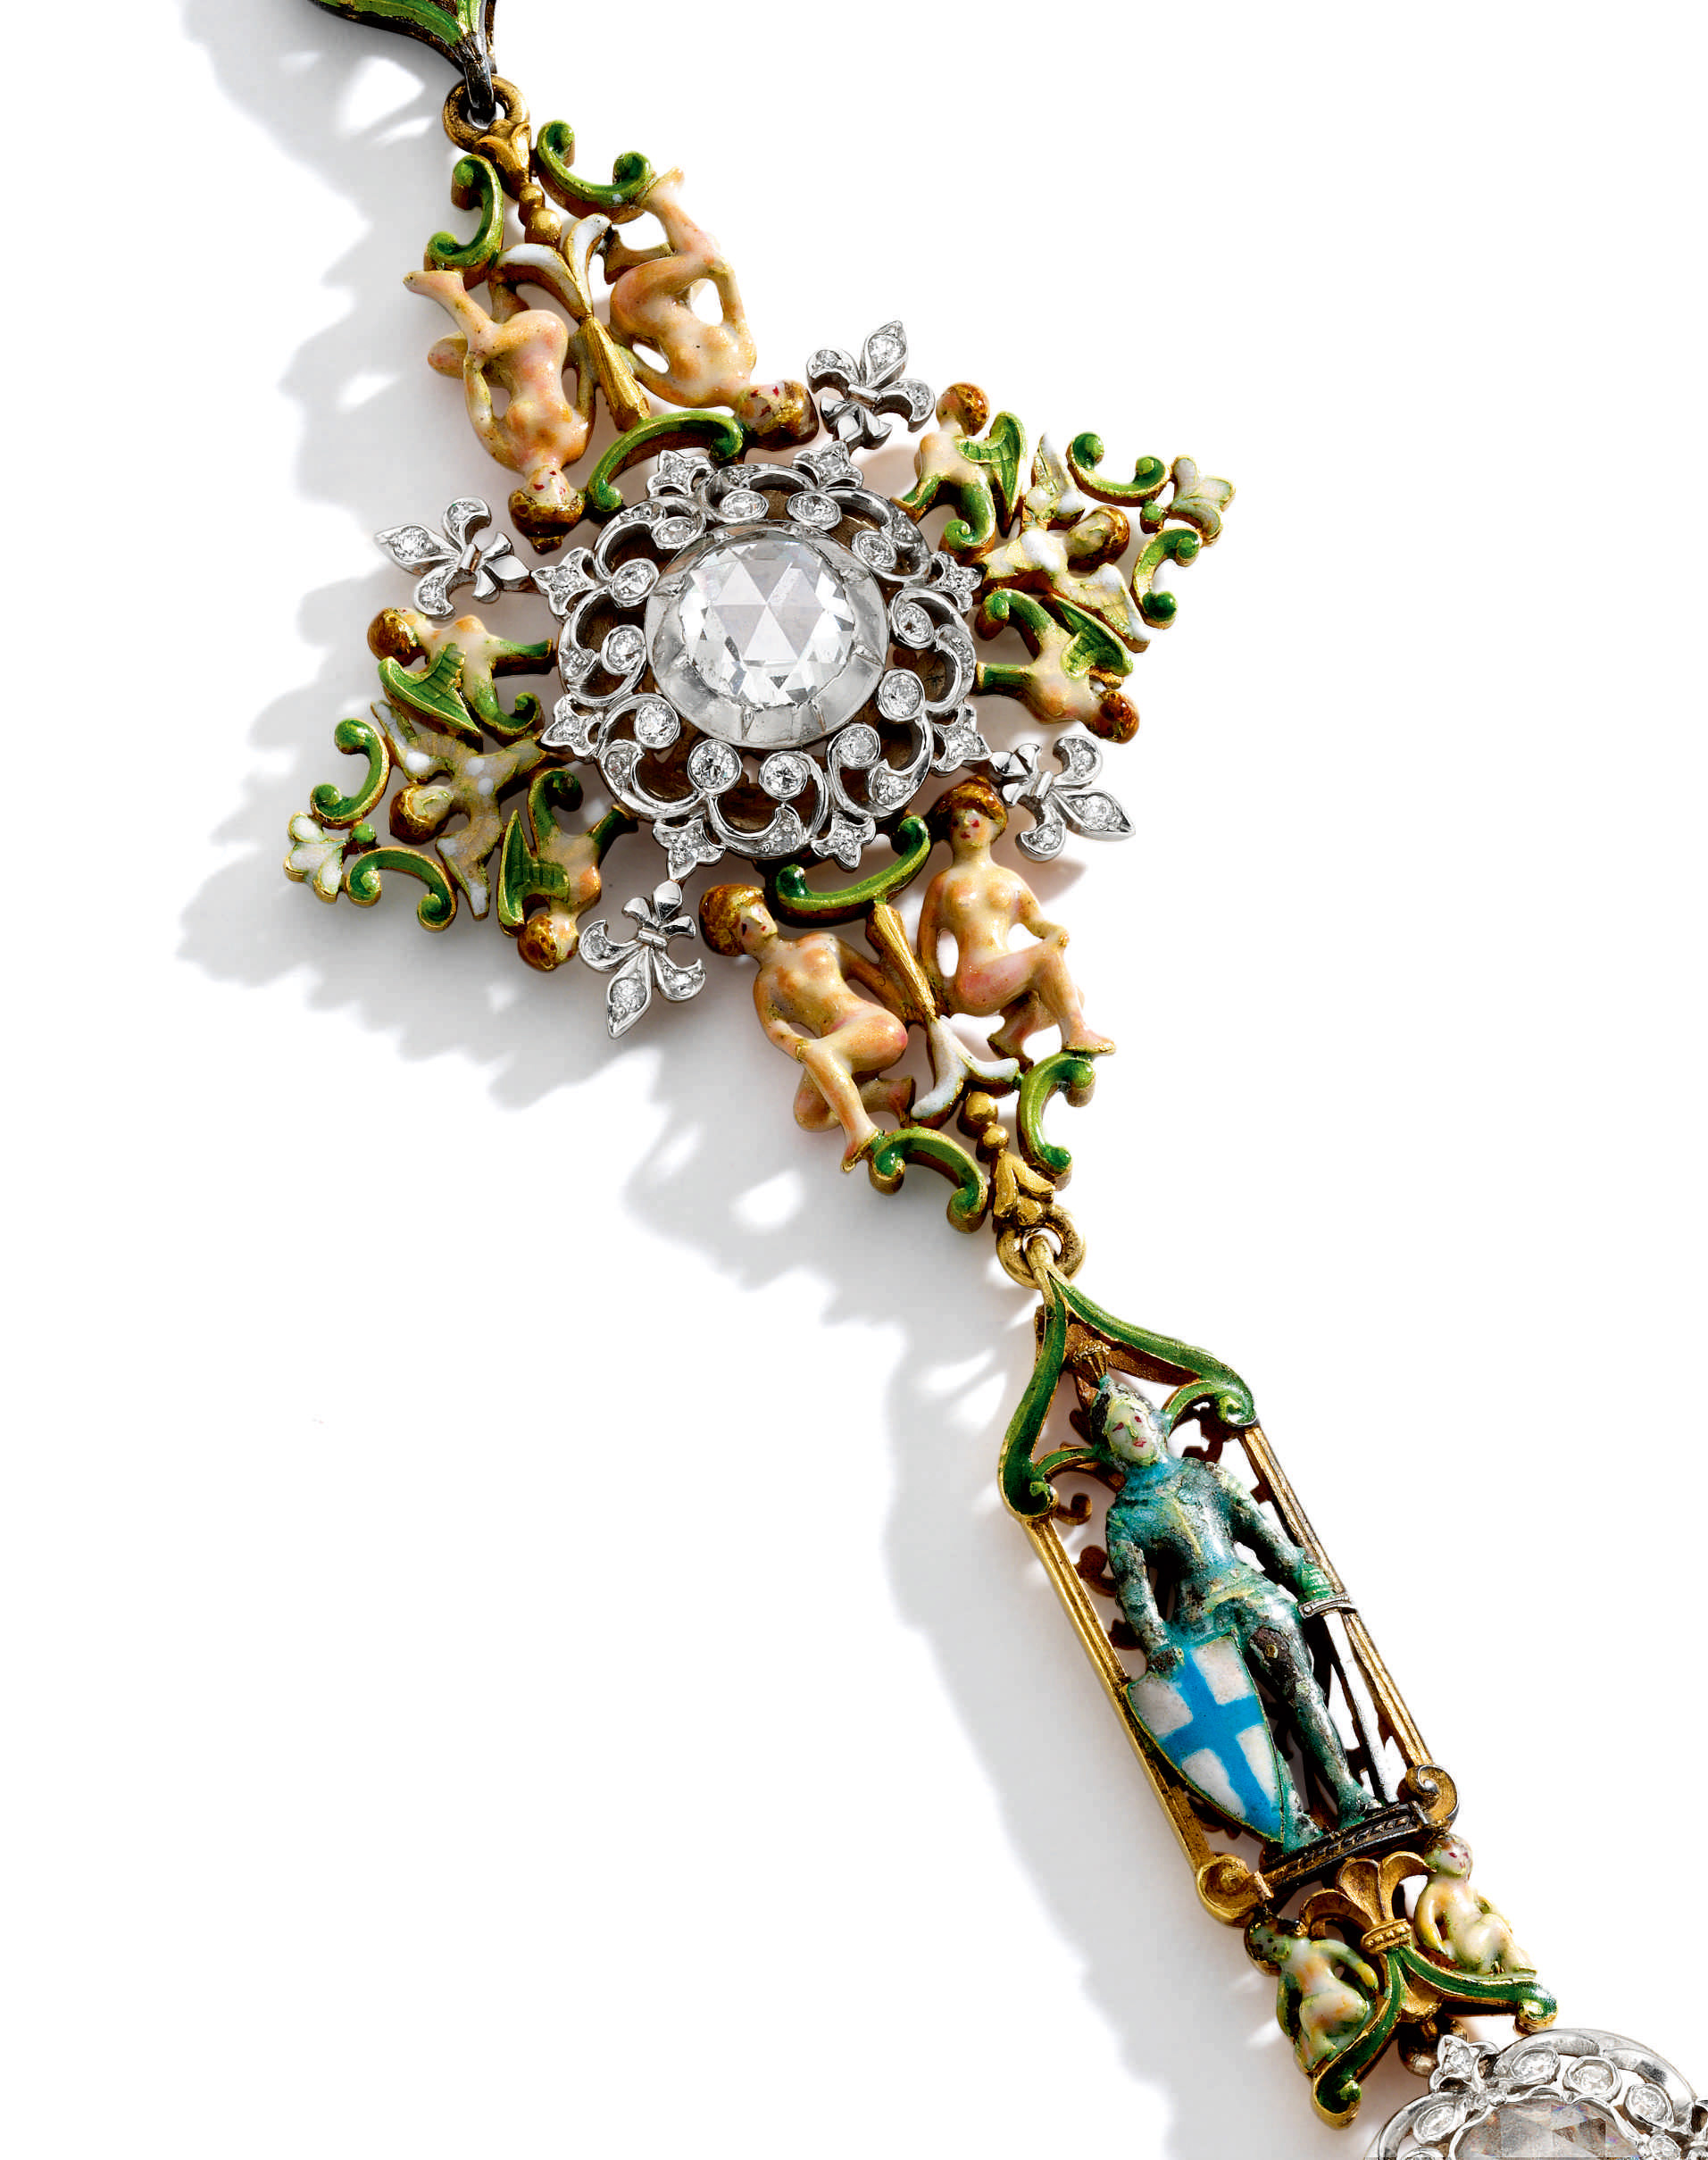 Enamel and Diamond Demi-Parure, Paulding Farnham for Tiffany & Co.